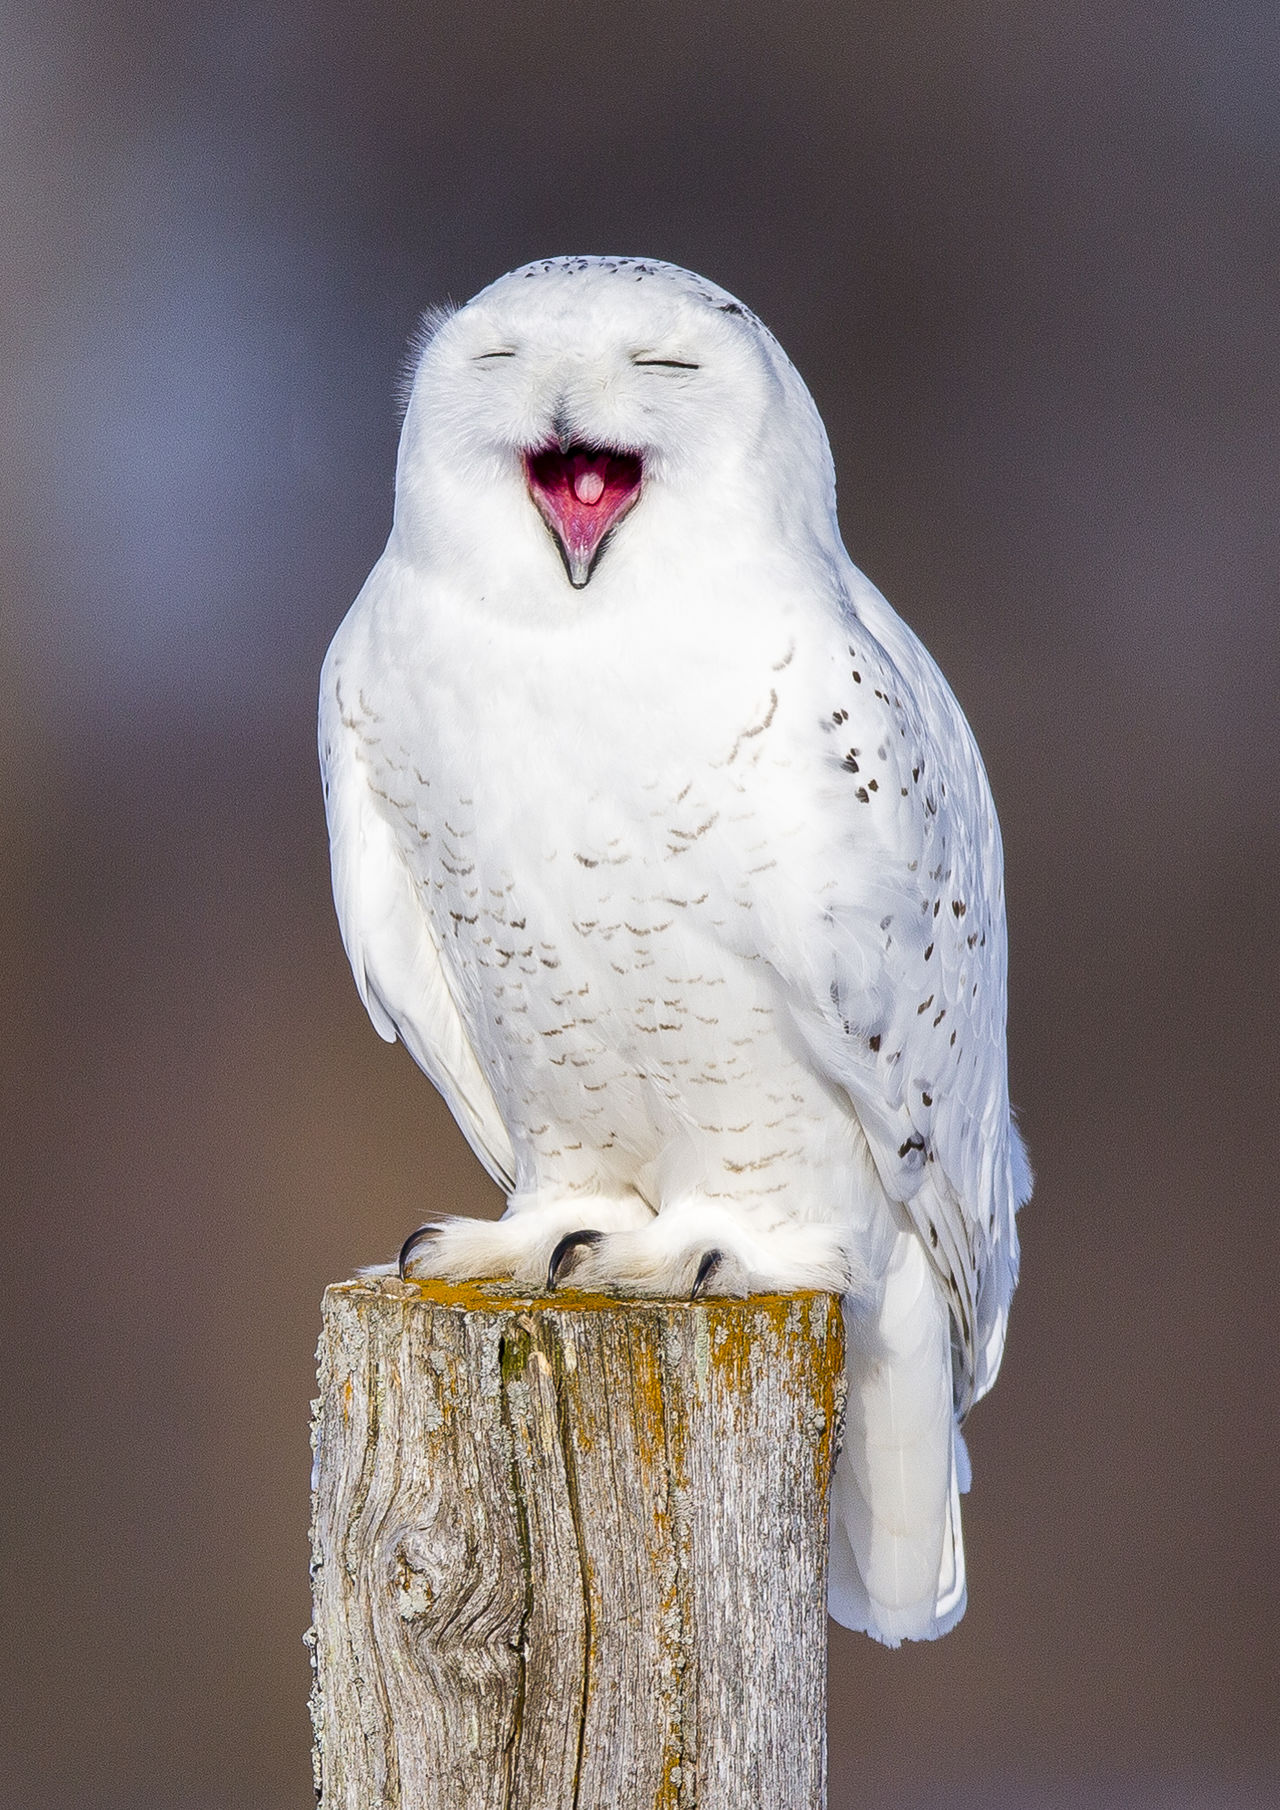 Snow owl posing Animal Themes Animal Wildlife Bird Close-up Day Fence Post Male No People One Animal Owl Snow Owl White Color